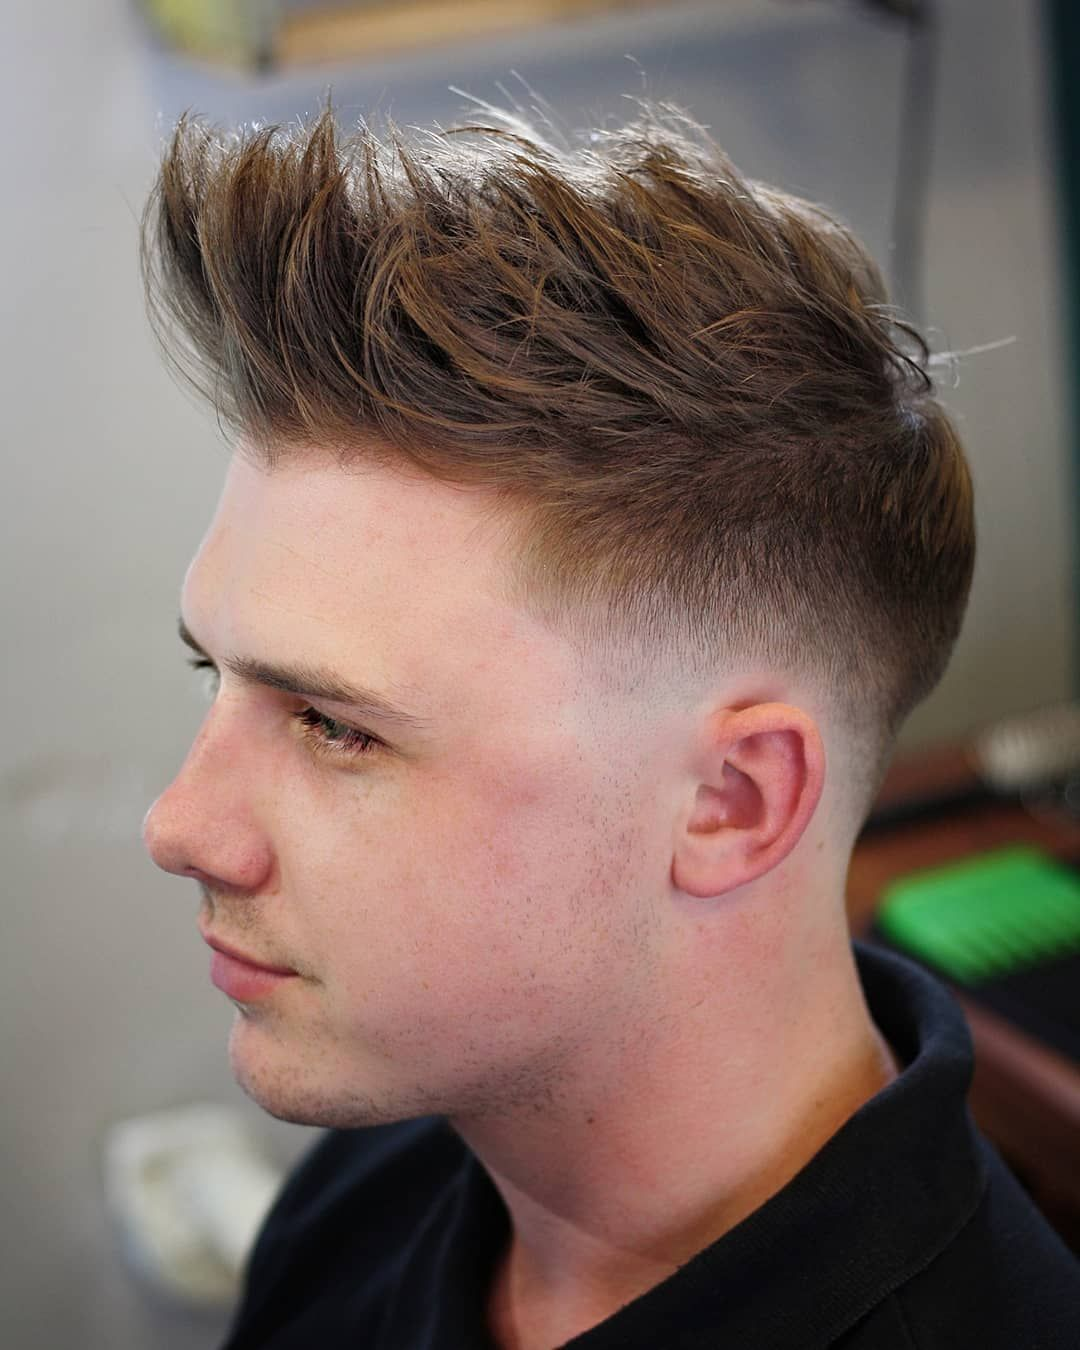 40 Fade Haircuts For Men New 2020 Update Pick Your Next Haircut Mens Haircuts Short Mens Haircuts Fade Fade Haircut